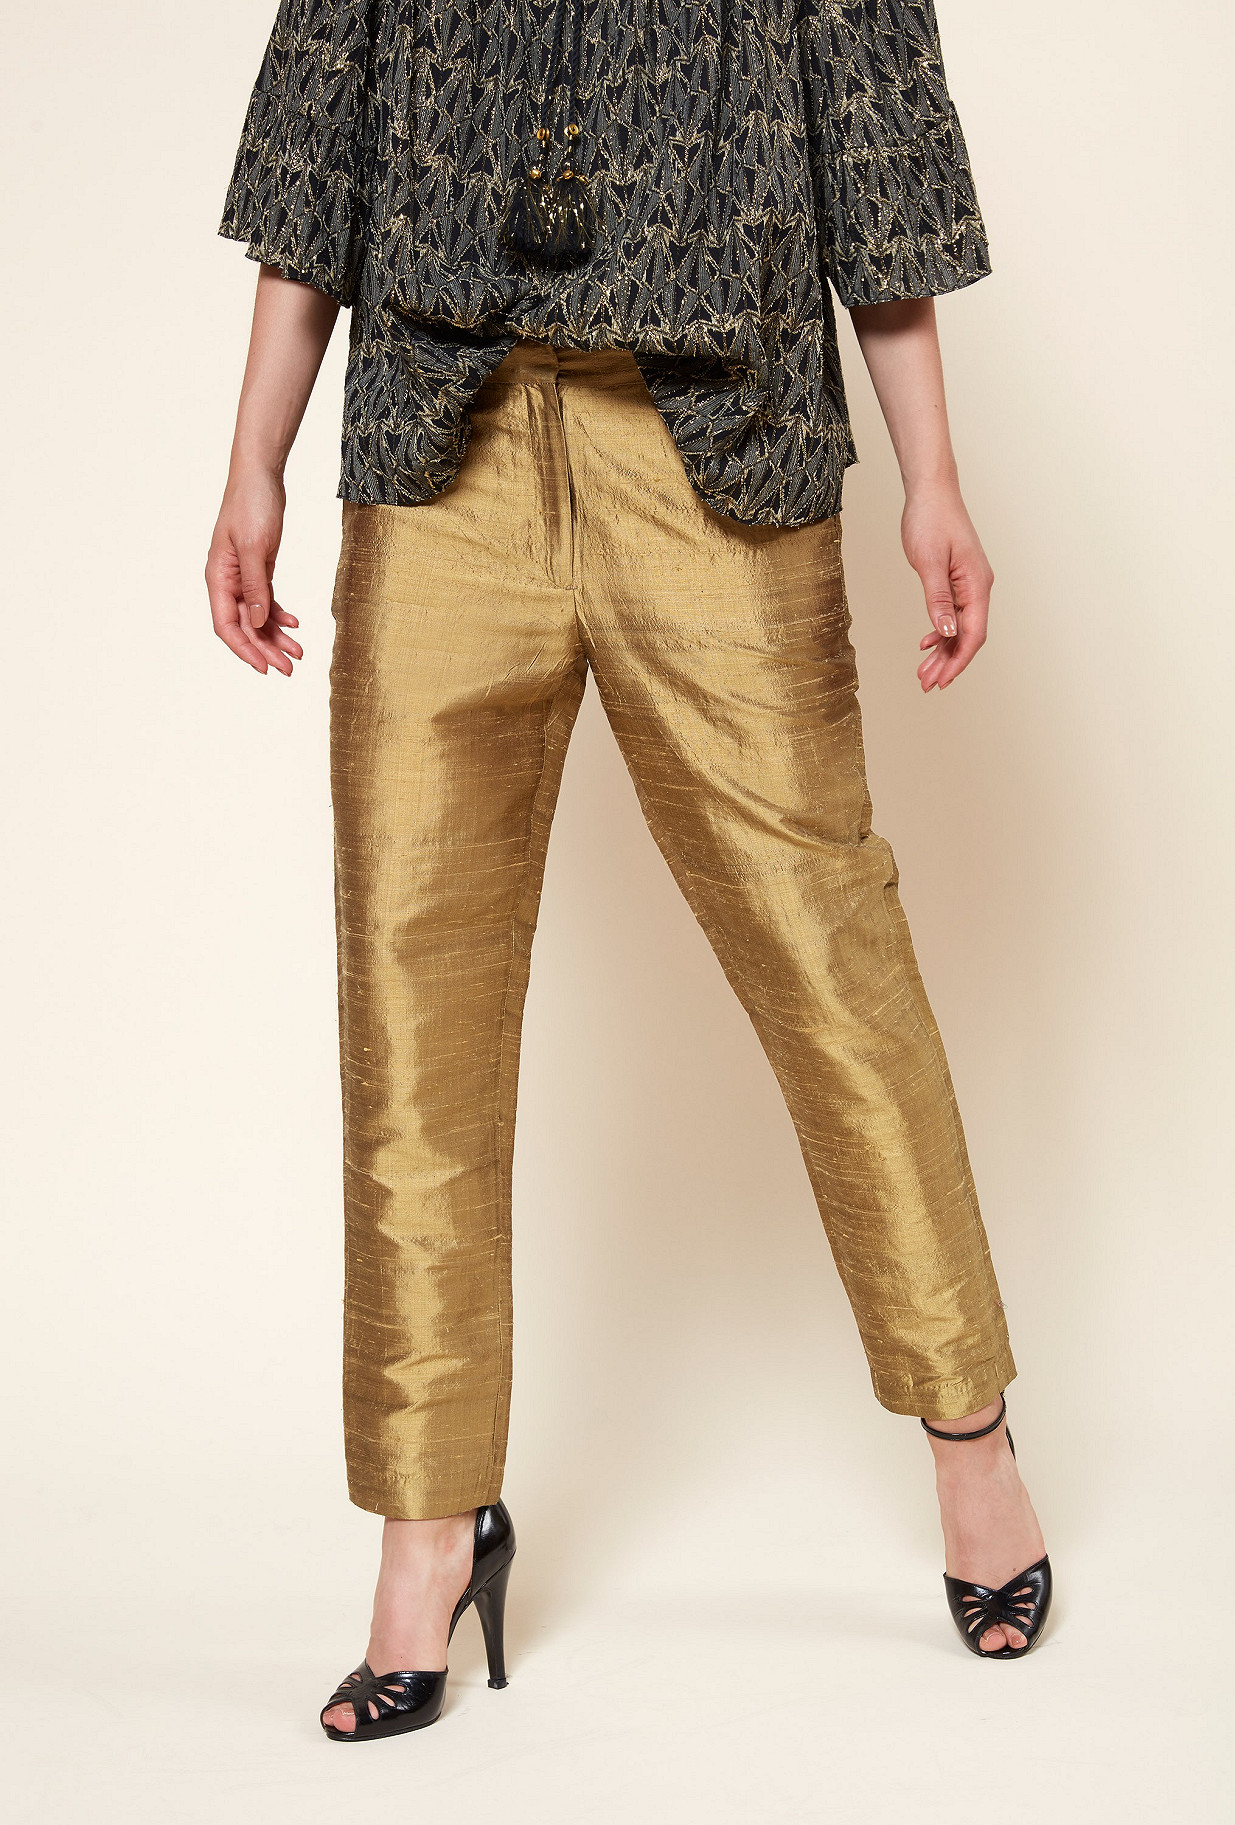 PANTALON Or  Goldie mes demoiselles paris vêtement femme paris